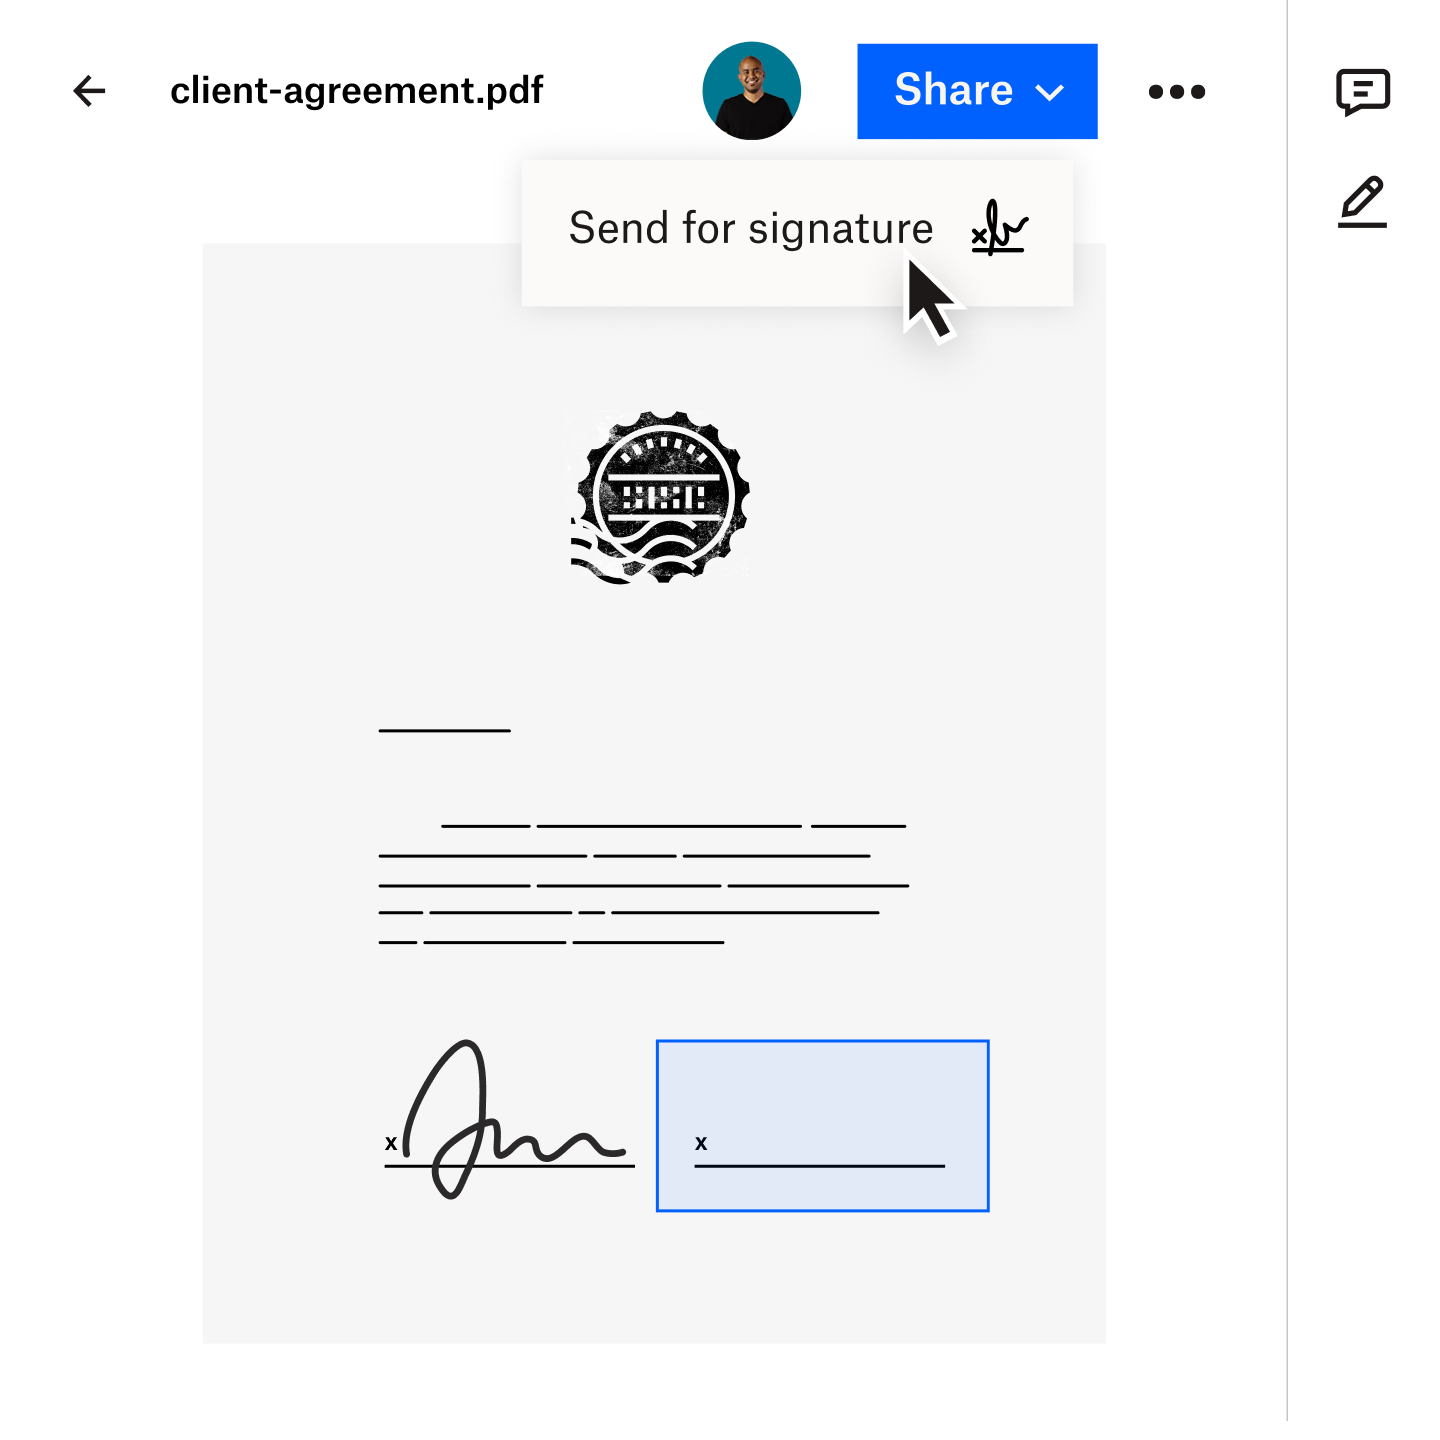 Image of a document being securely transferred to a client using Dropbox Transfer